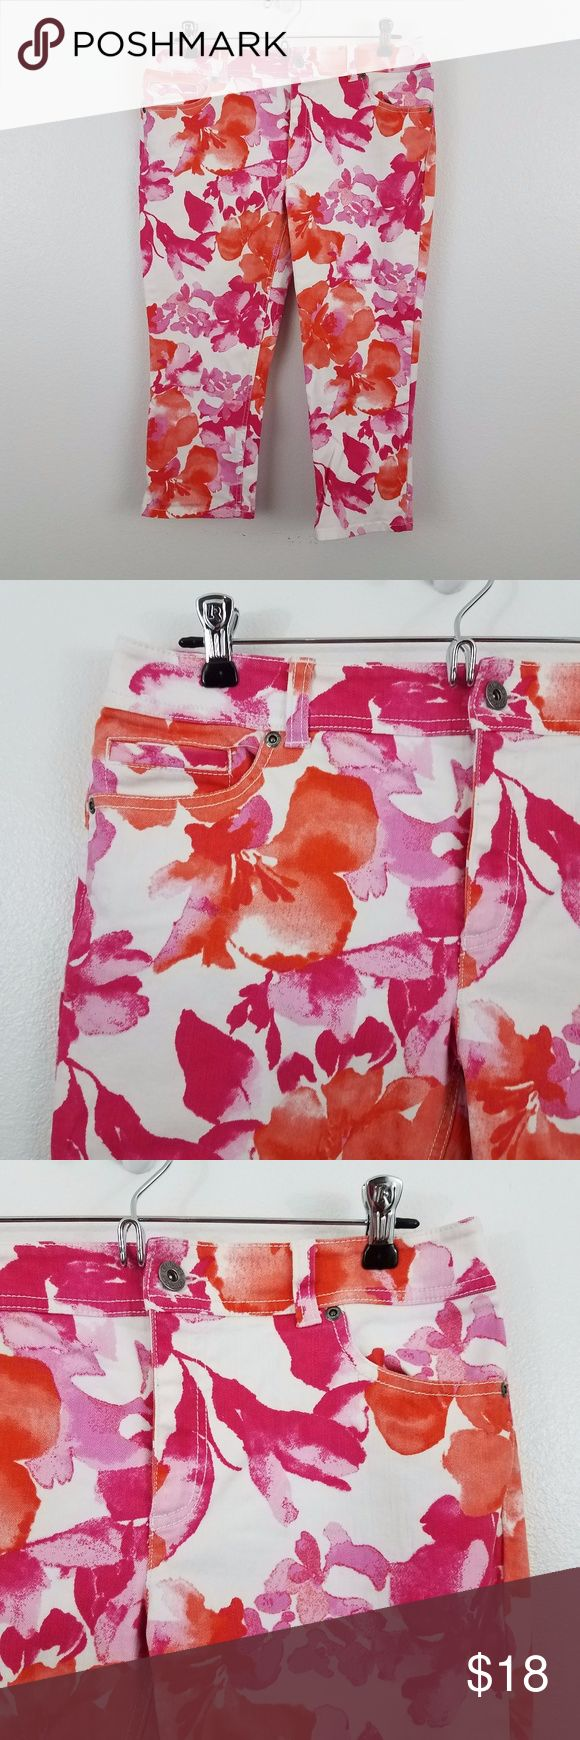 Chicos jeans capris floral pink orange Chicos jeans capris crop floral white pink orange 0.5 6 S womens summer pants Size .5 in Chicos or 6, see measurements below. Used. No rips, tears, or stains. See photos.  Measurements are taken while item is lying flat.  Waist (x2): 16 Inches  Inseam: 20.5 Inches  Inv P. Chico's Jeans Ankle & Cropped